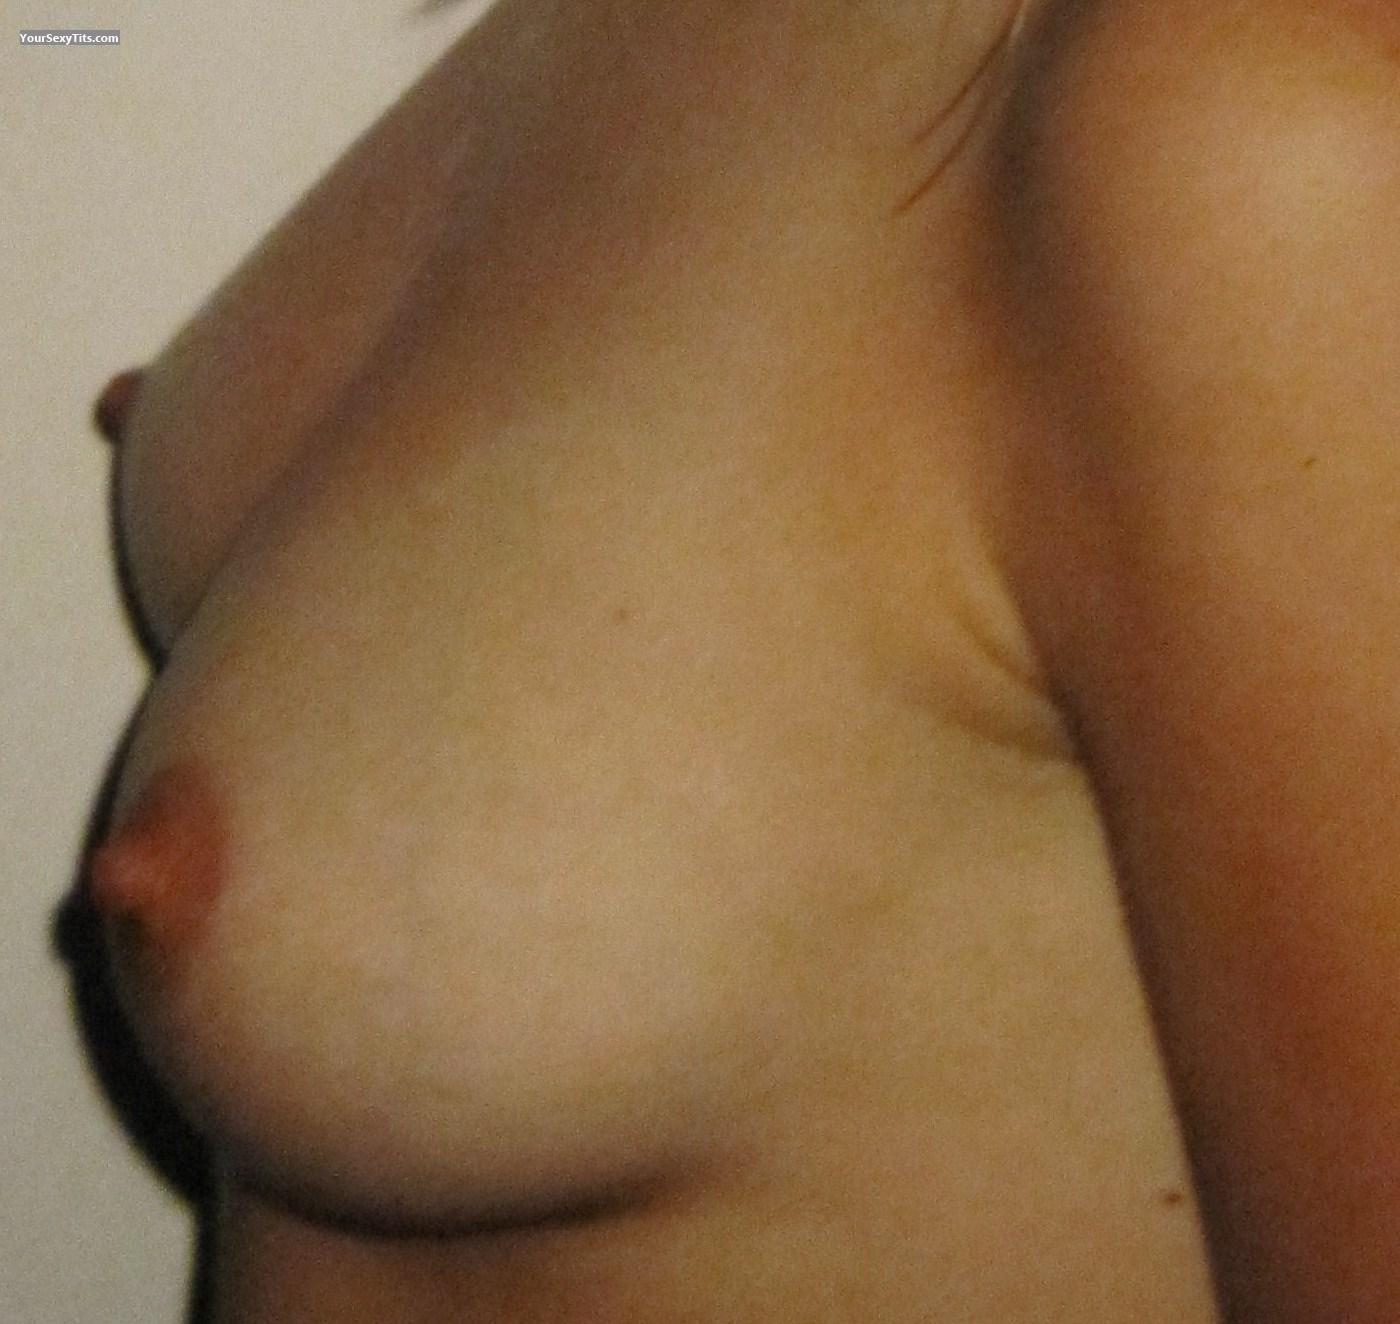 Tit Flash: Small Tits - Andi from Germany